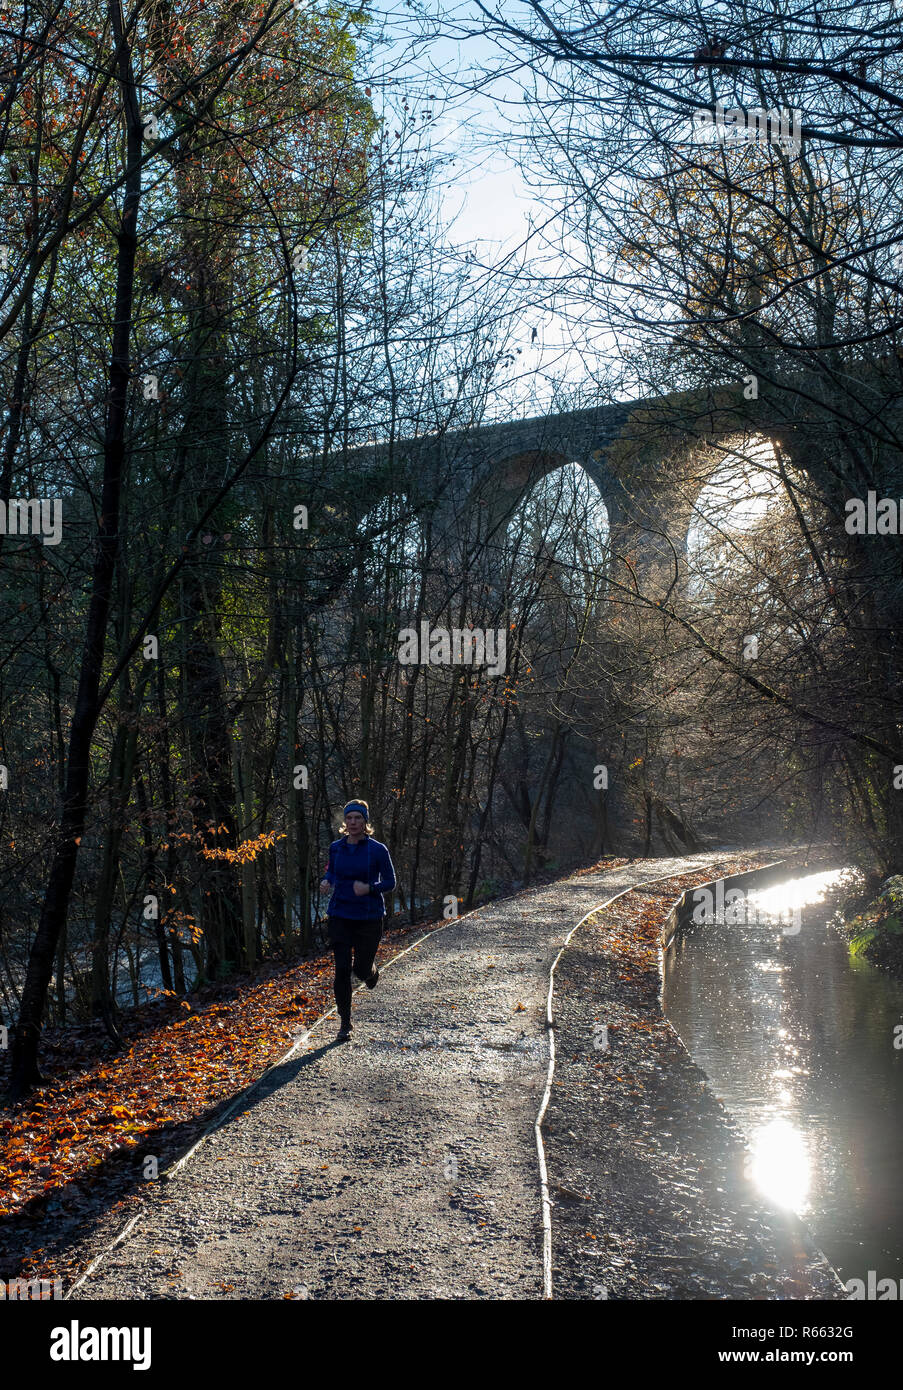 A lone runner on a frosty morning in Almondell and Calderwood Country park, West Lothian. - Stock Image